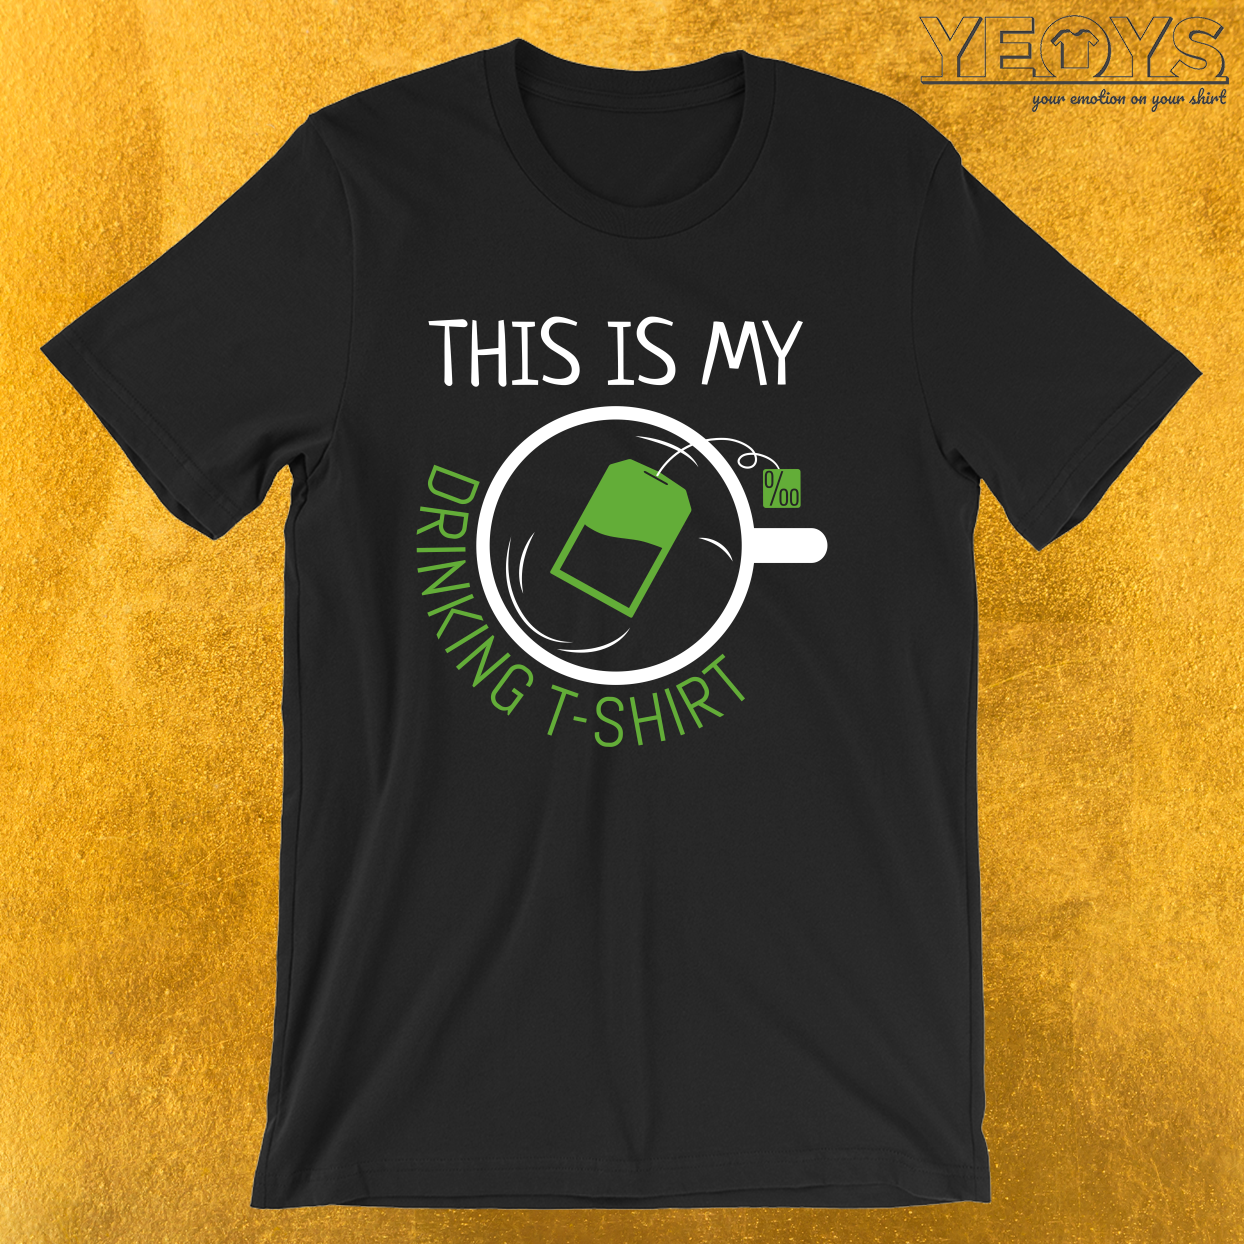 This Is My Drinking Tea Shirt – Funny Tea Pun Tee